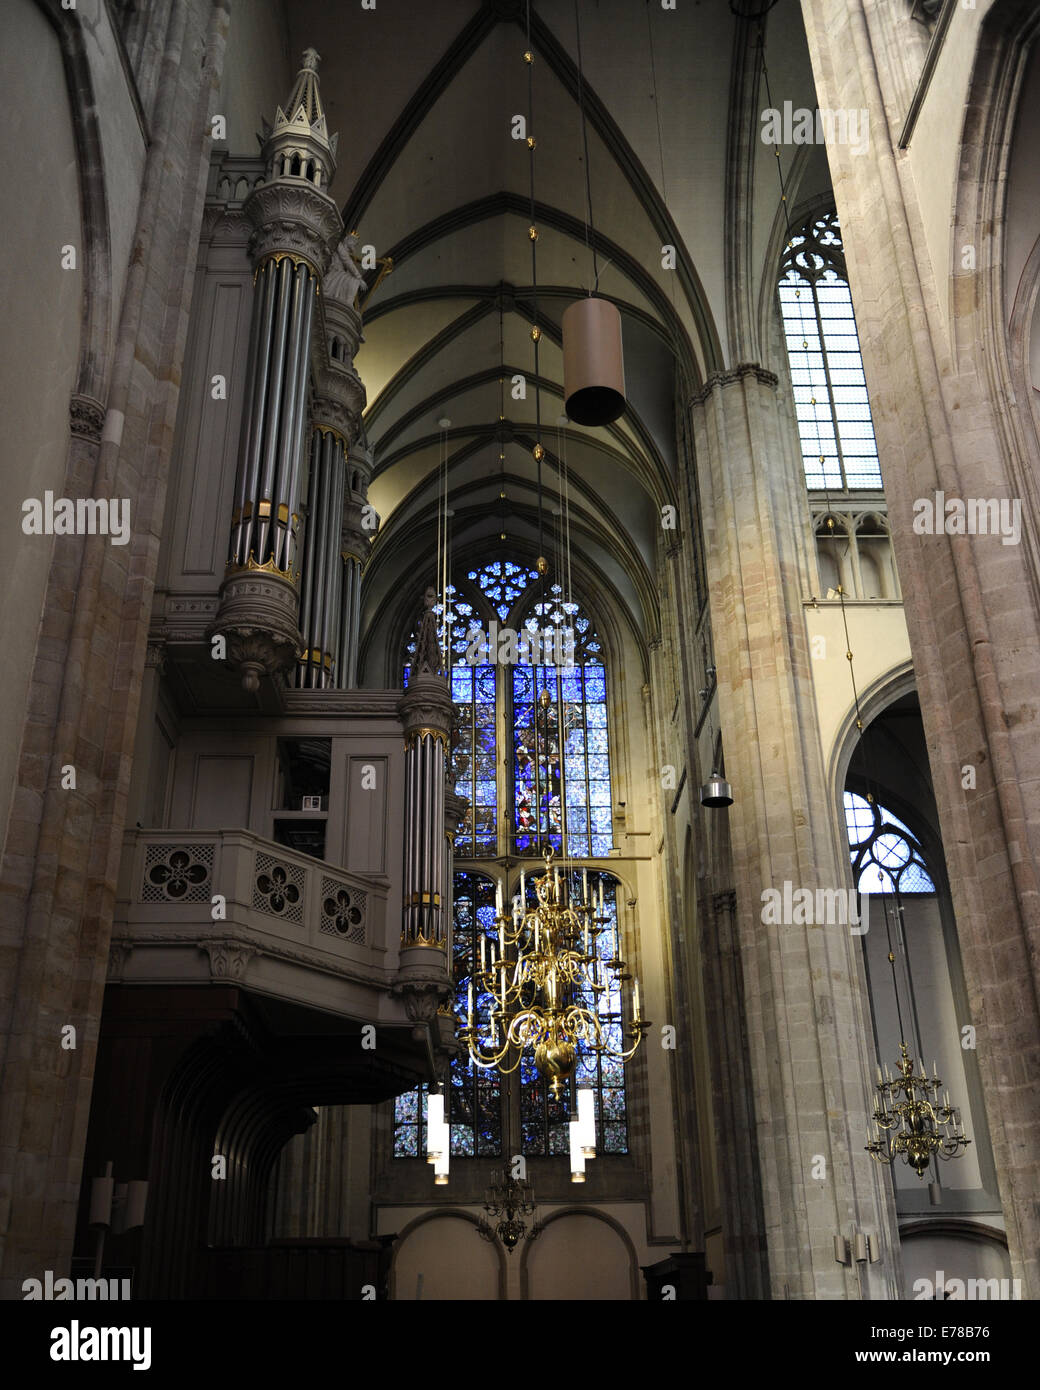 St Martins Cathedral Middle Ages French Gothic Protestant Church Since 1580 Inside